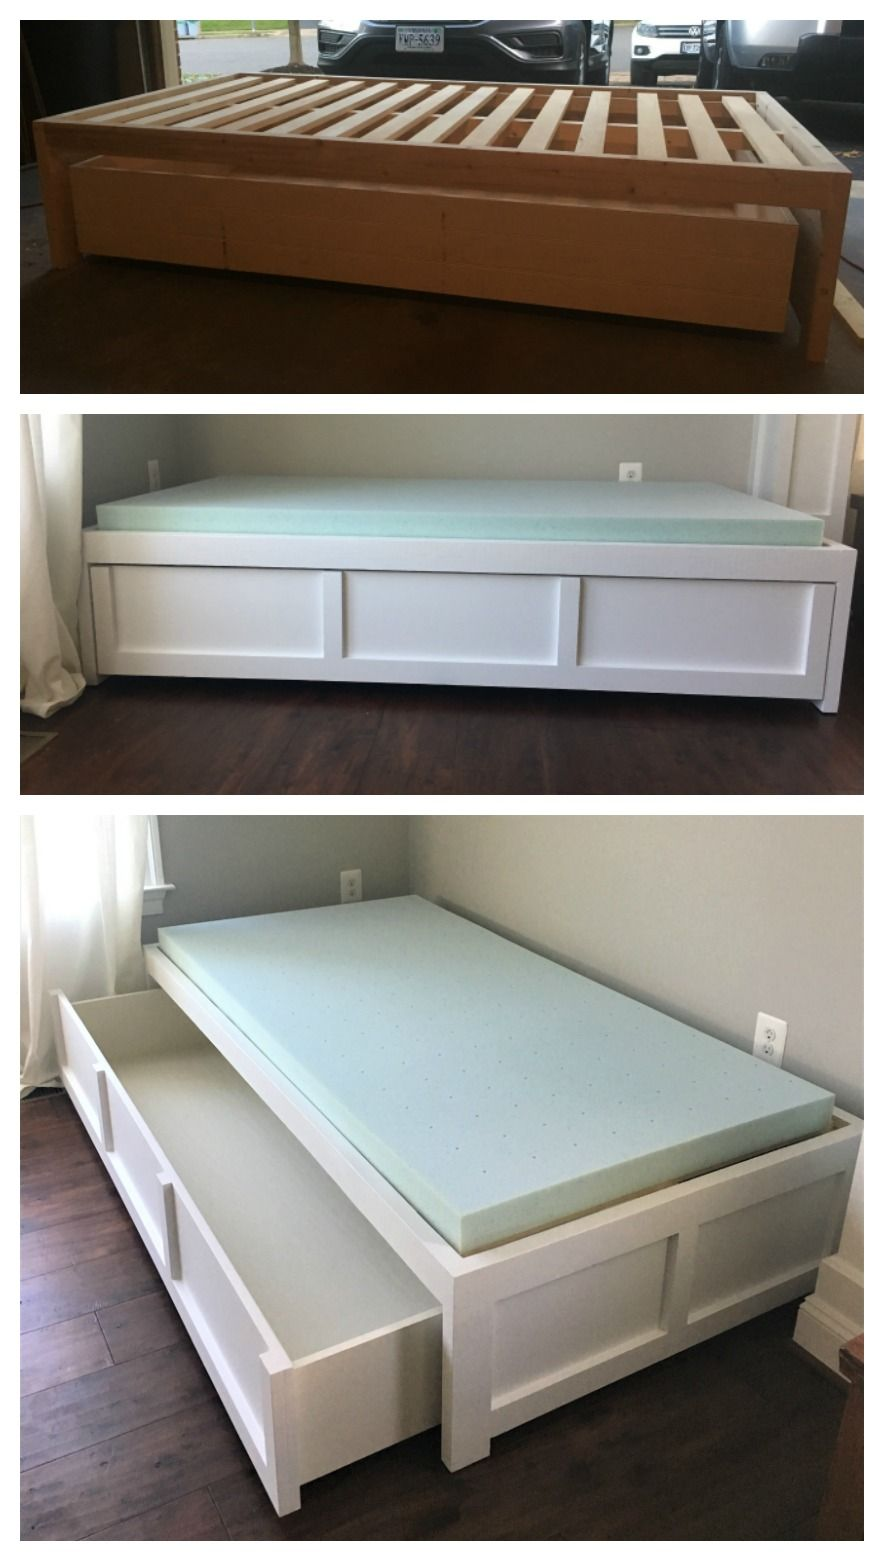 - Ana White Daybed With Storage - DIY Projects Daybed With